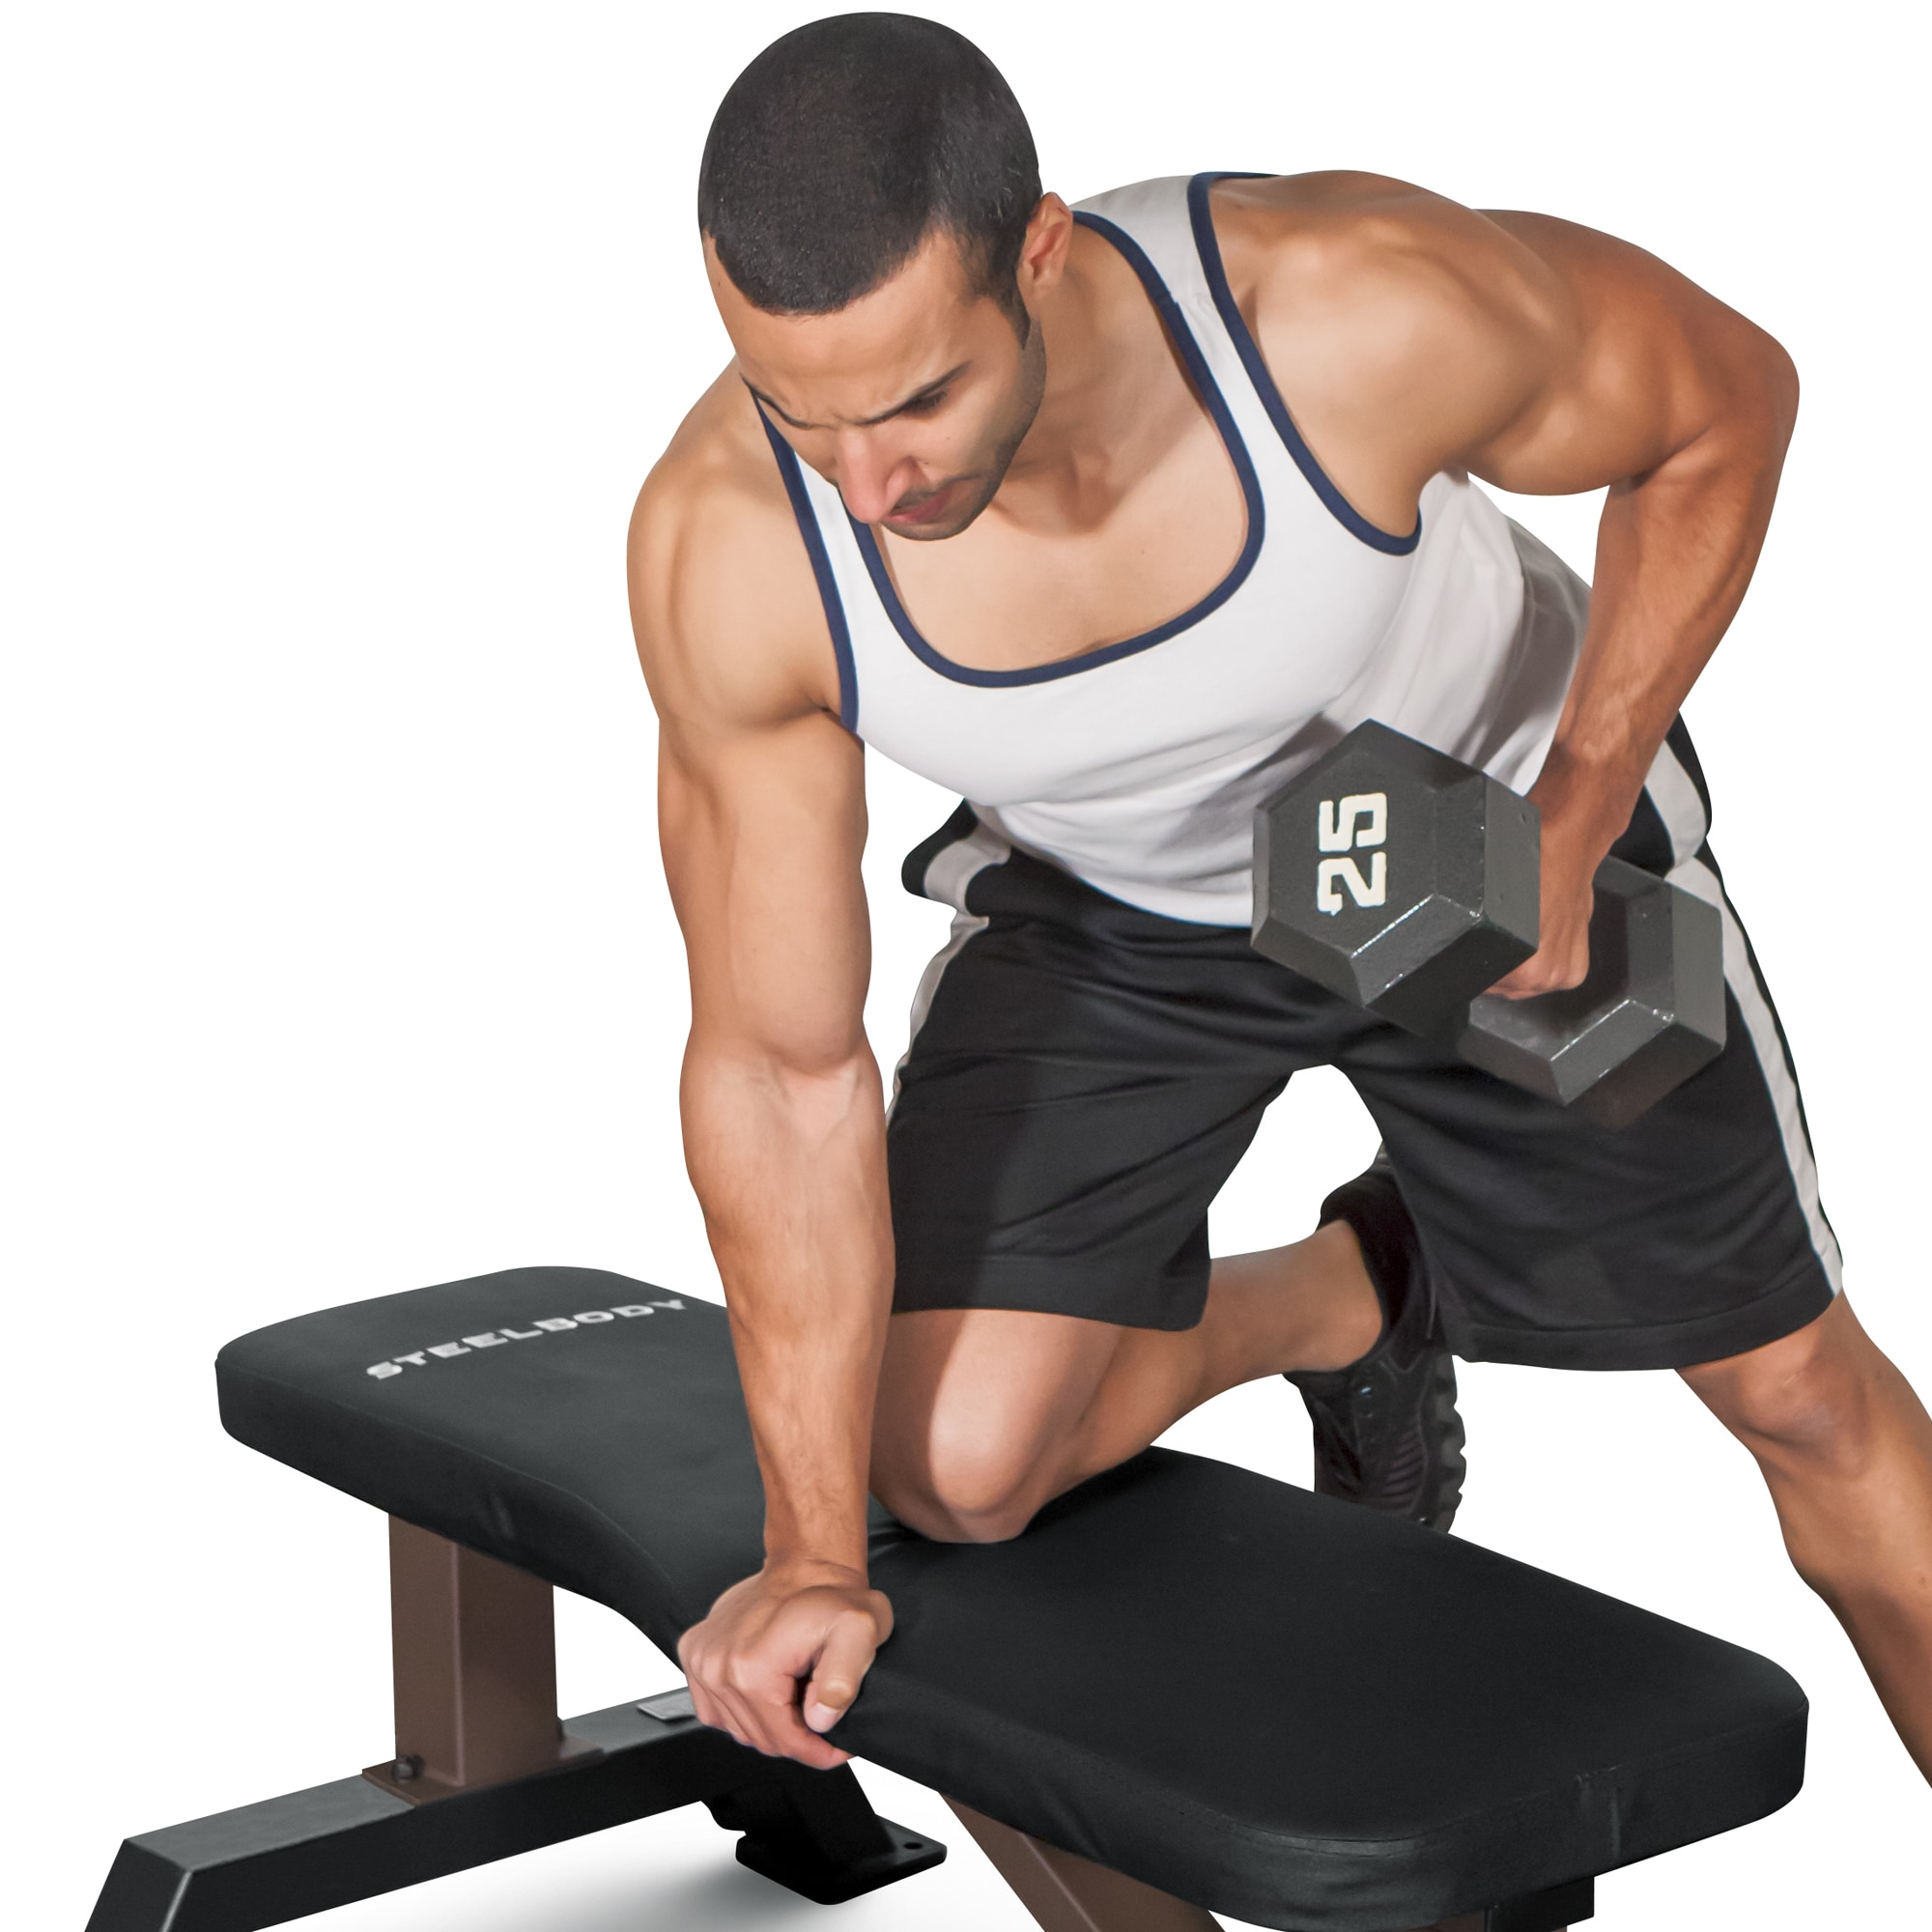 Heavy Duty Flat Weight Bench Benches Compare Prices At Nextag Free Weights Gfid71 Steelbody Black Steel